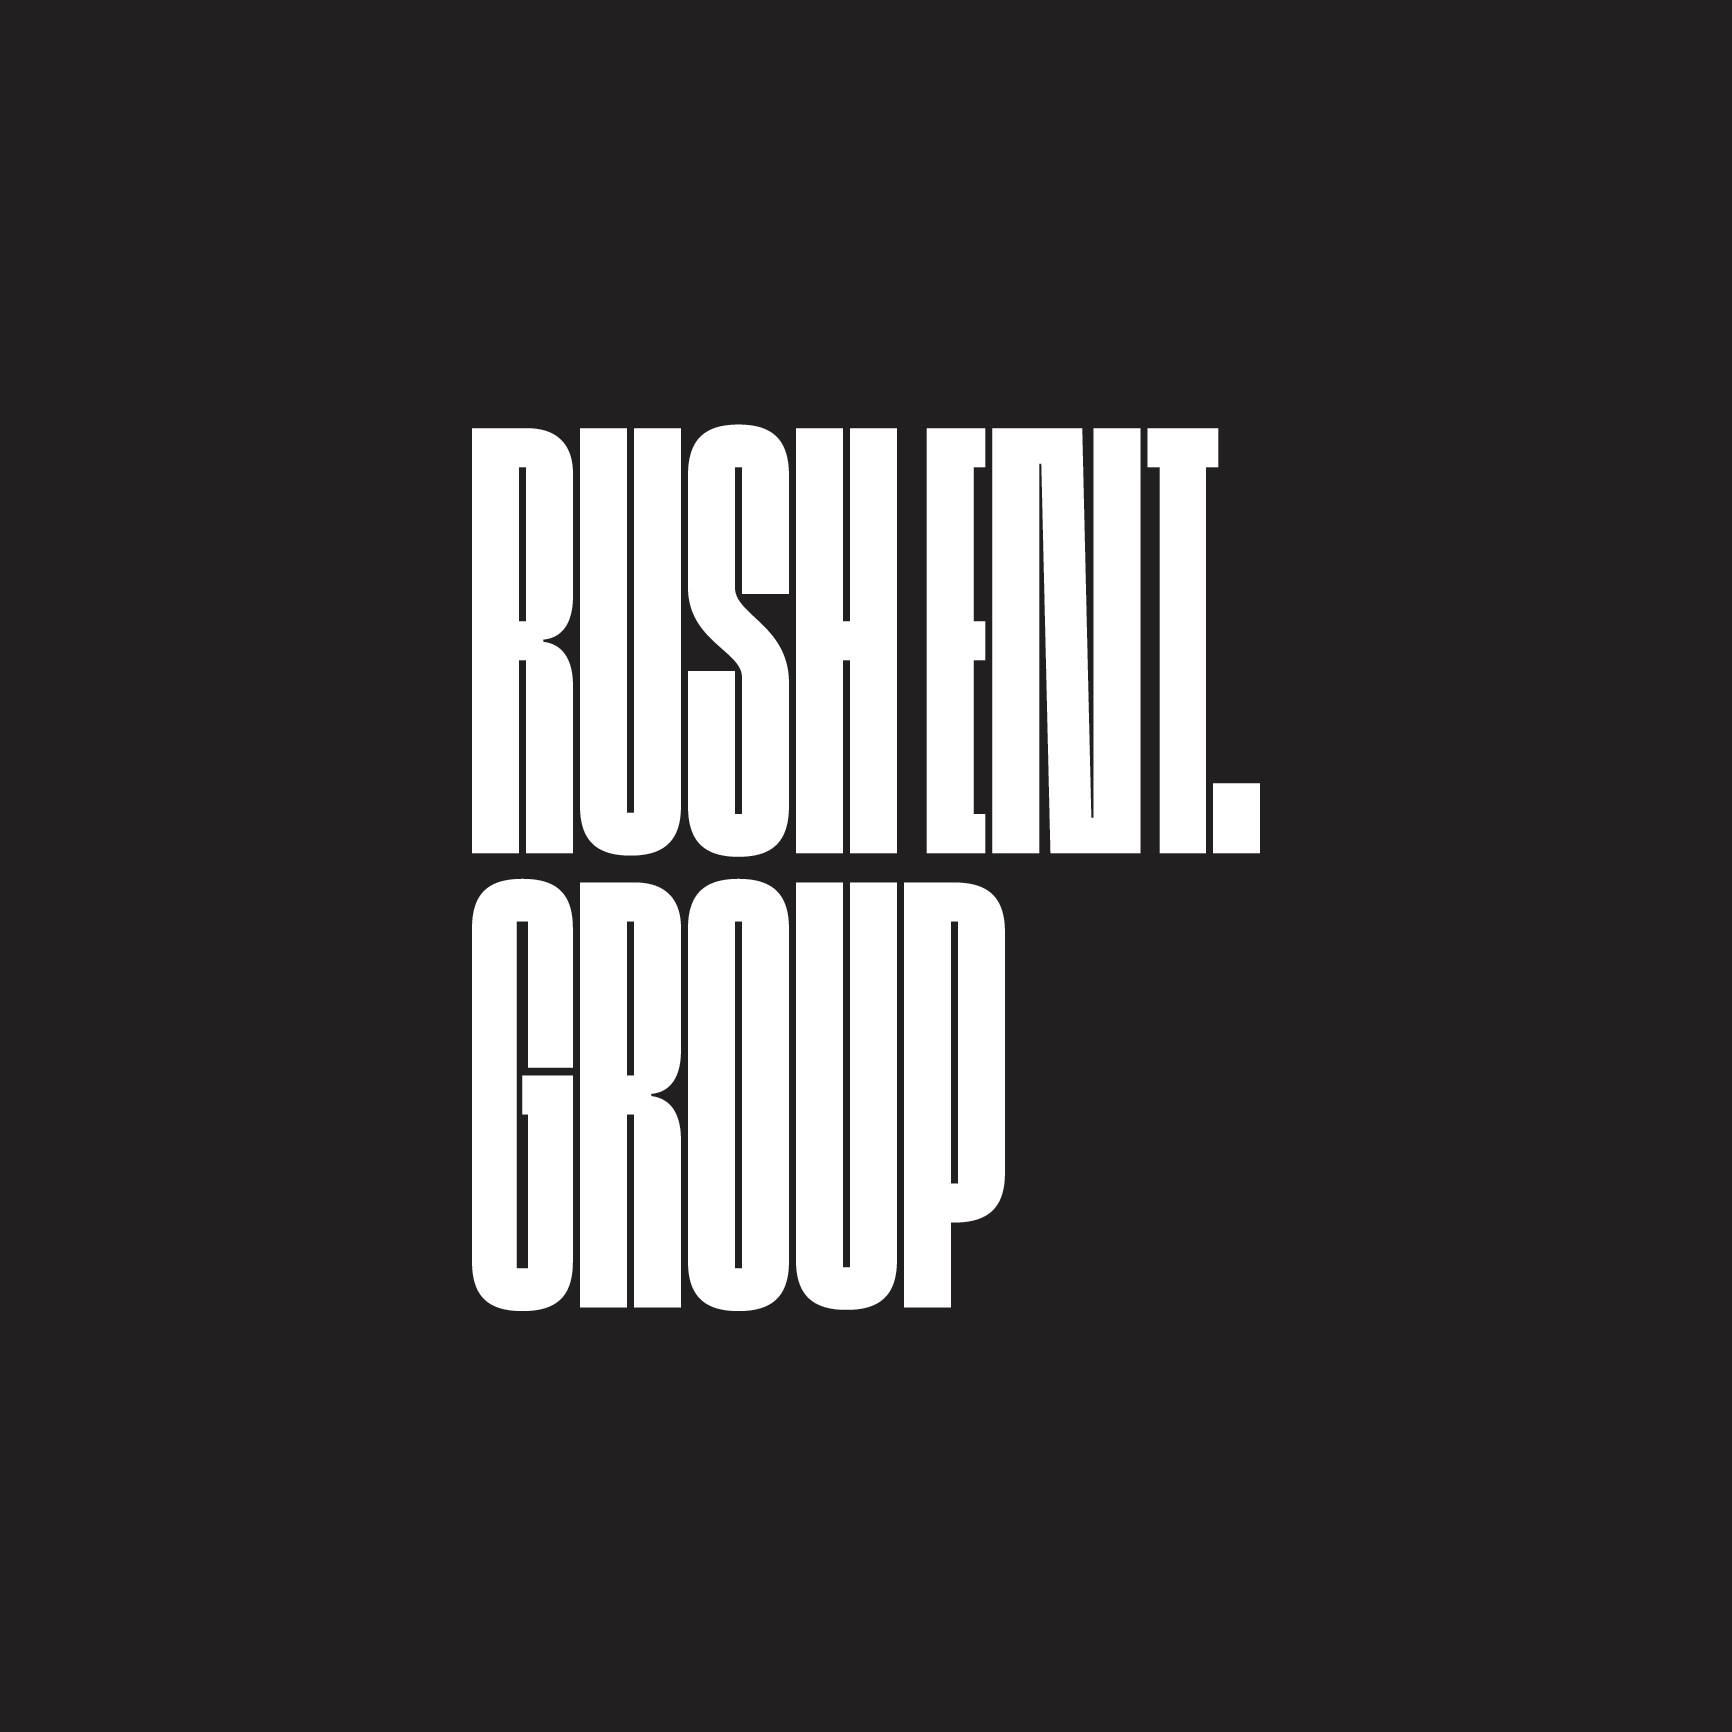 Rush_Entertainment_Group.jpg